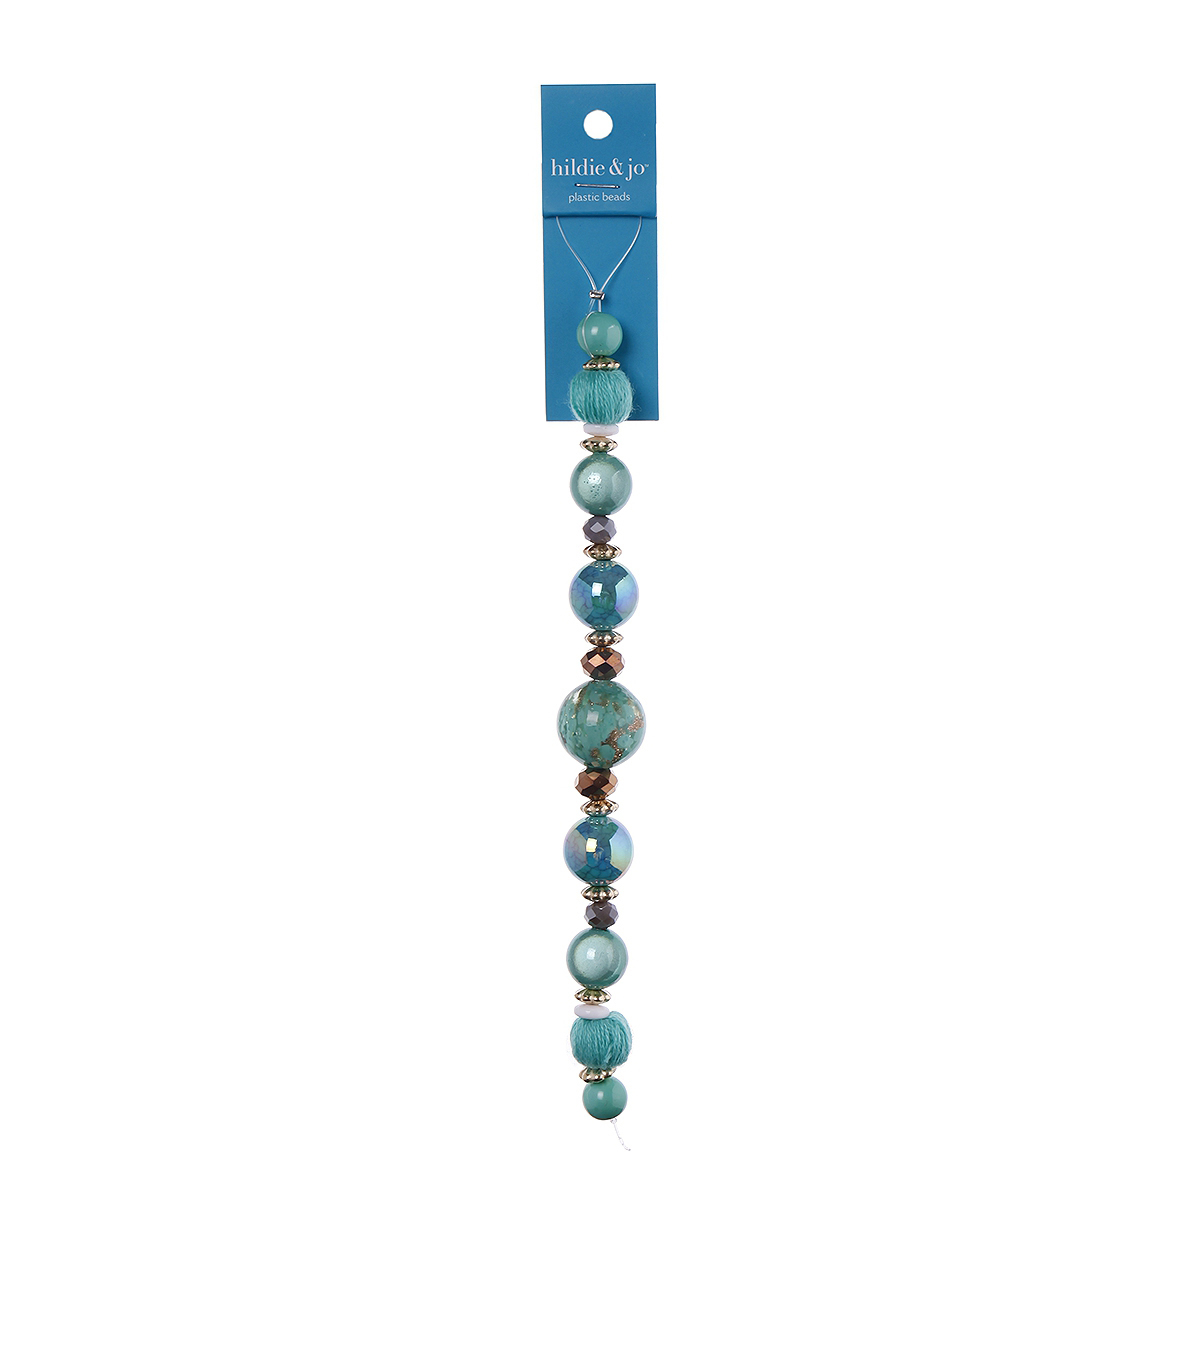 hildie & jo 7\u0027\u0027 Glass, Turquoise & Cotton Covered Beads-Blue